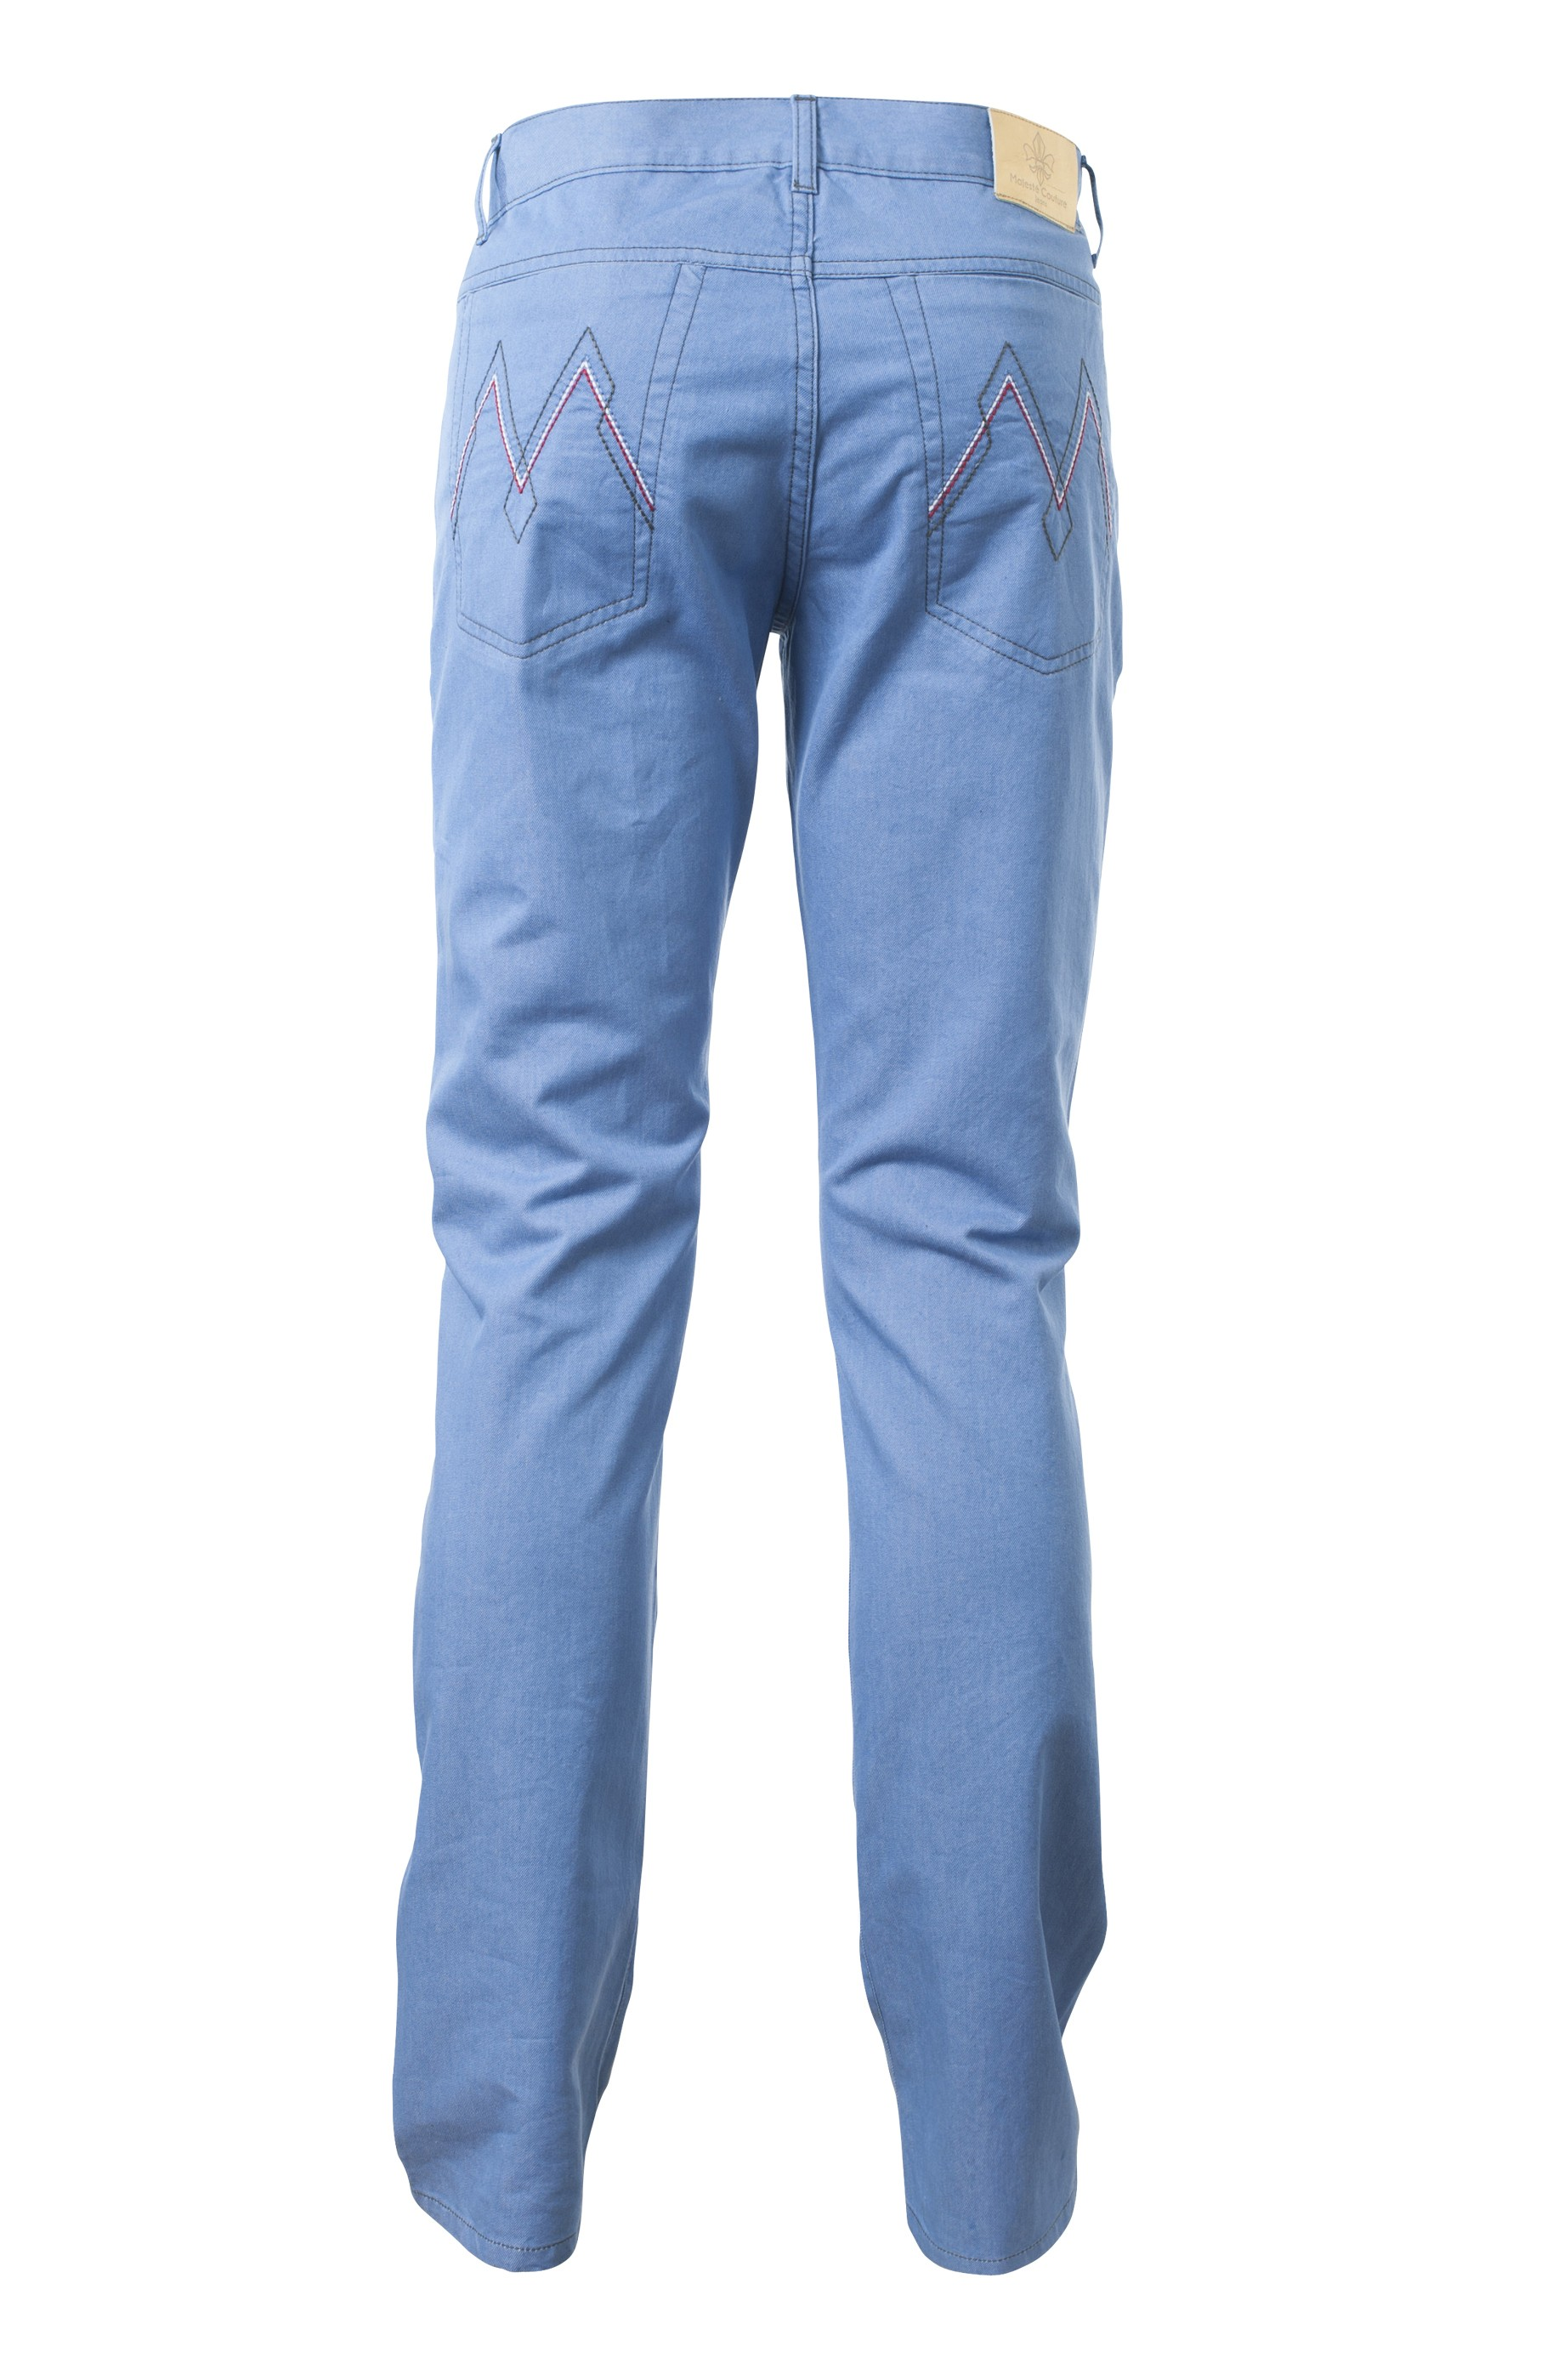 Majesté Couture Paris: MJ-536 CELESTIAL JEANS | Clothing,Clothing > Jeans -  Hiphunters Shop